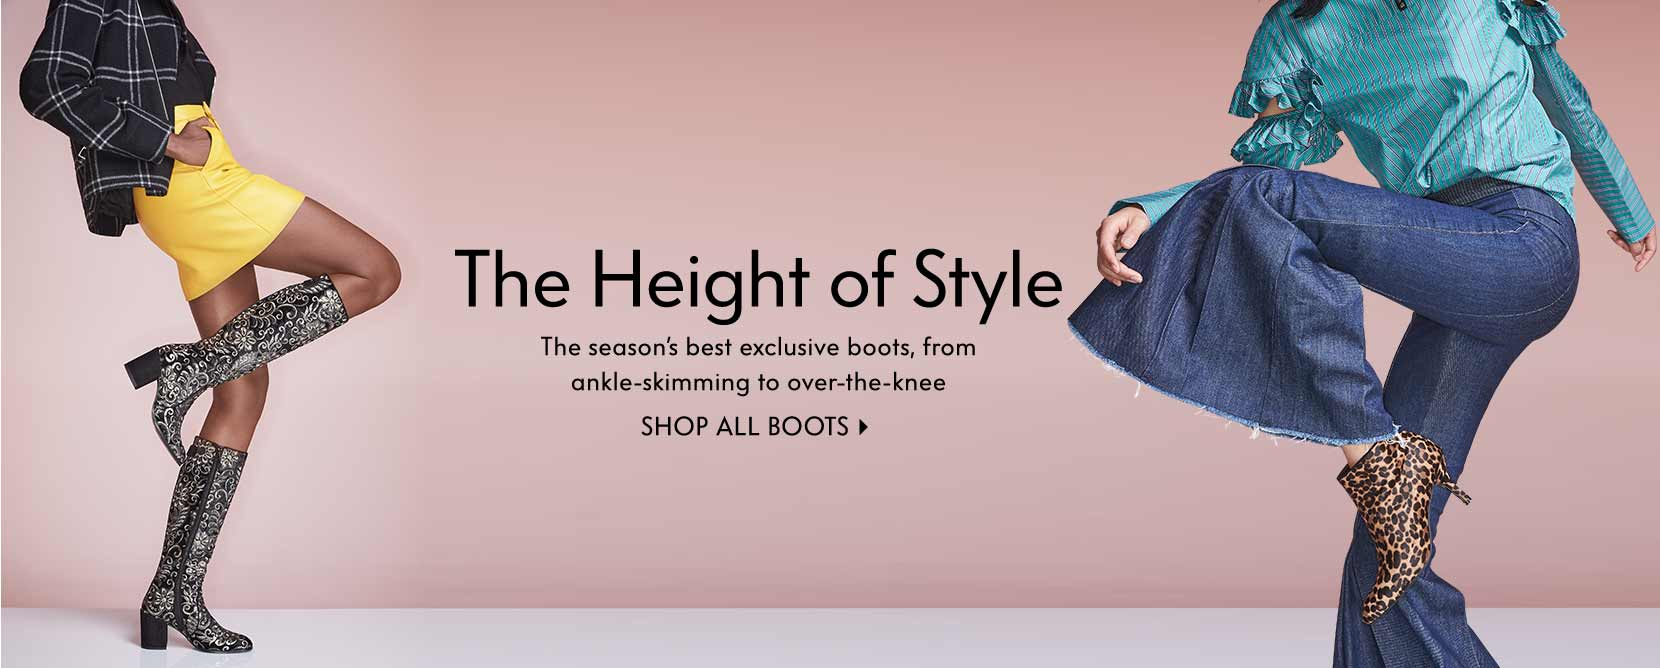 The Height of Style The season???s best exclusive boots, from ankle-skimming to over-the-knee Shop all boots